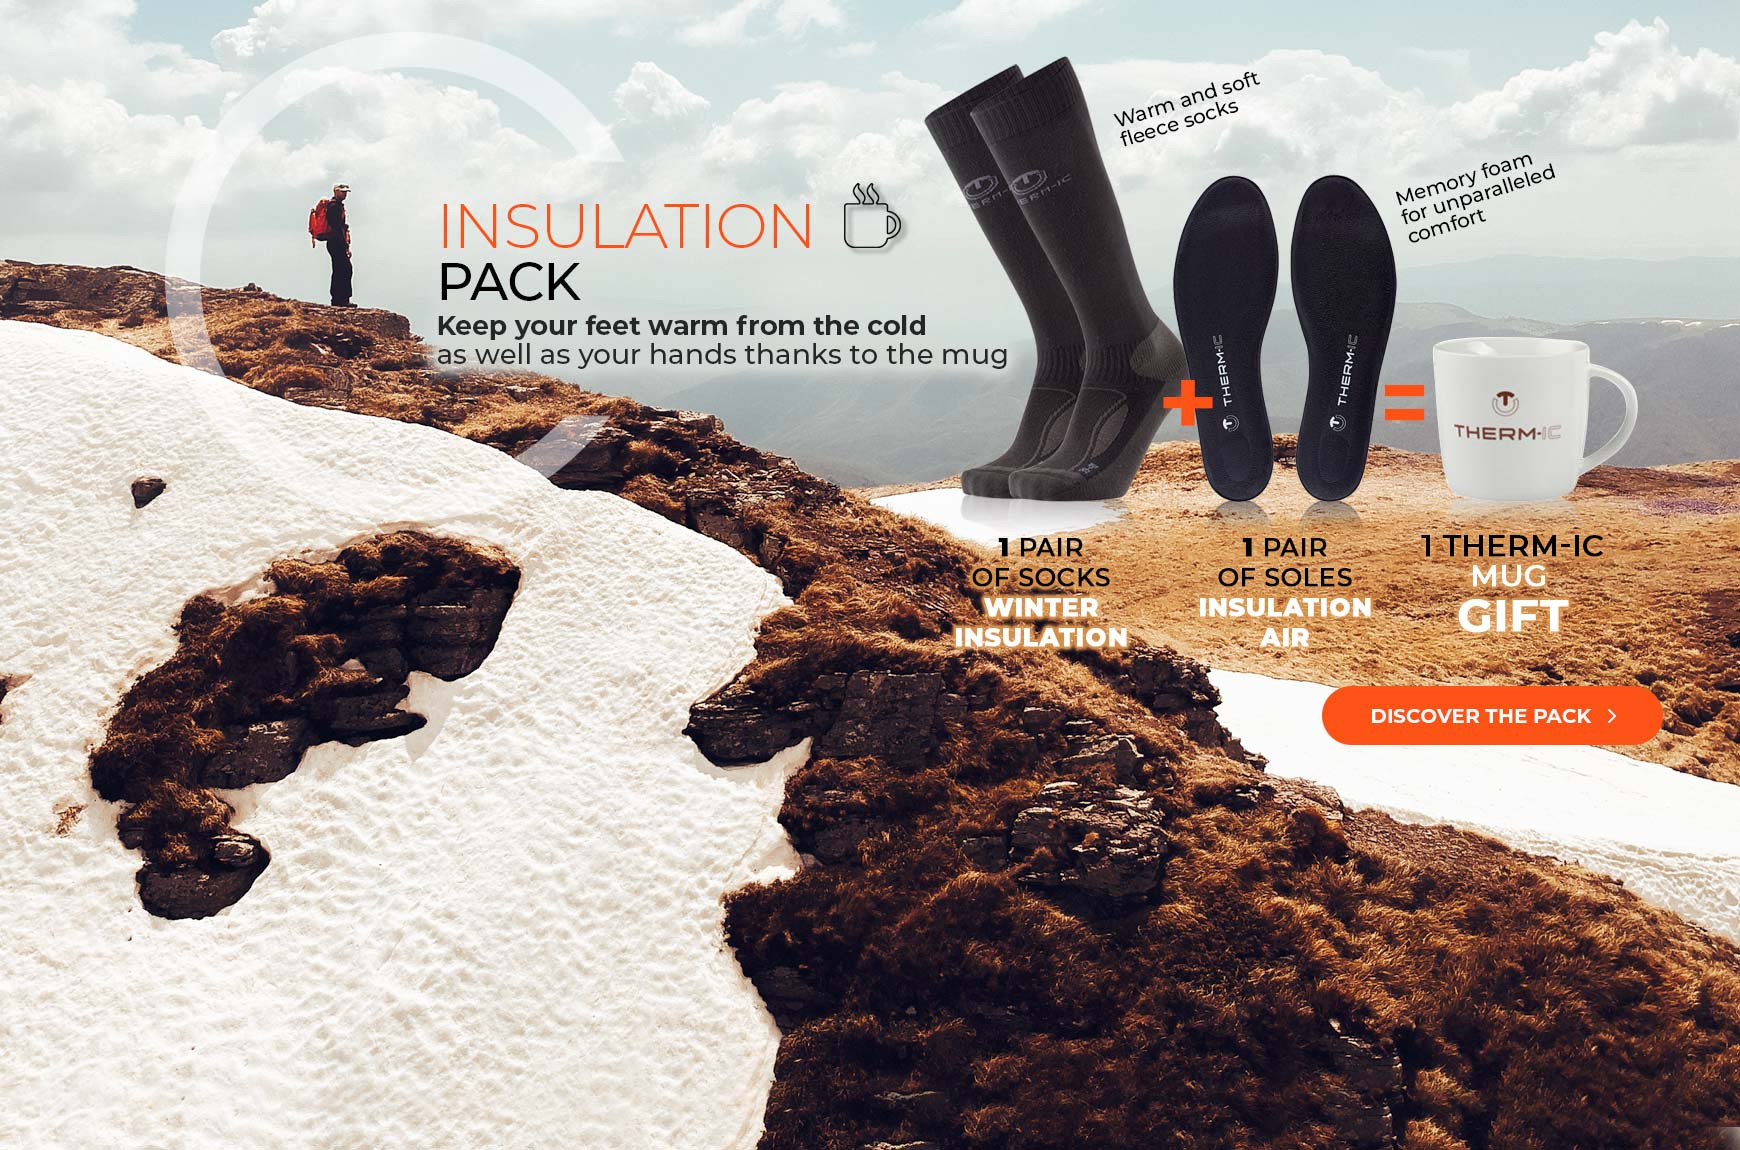 Take advantage of our winter insulation pack and get a free mug